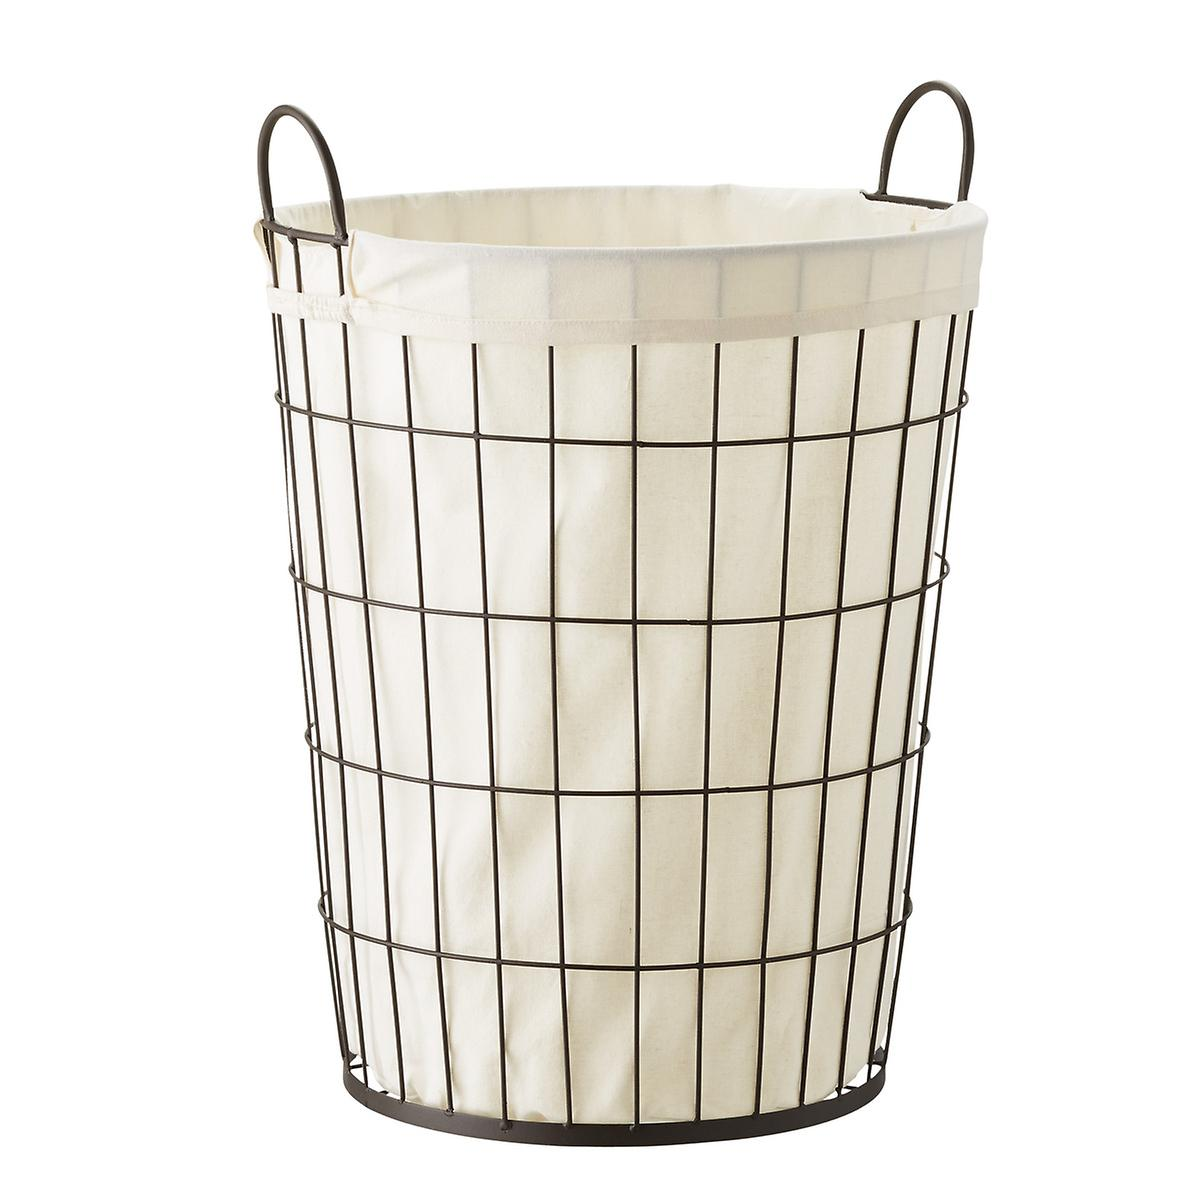 Iron Storage Barrel with Liner